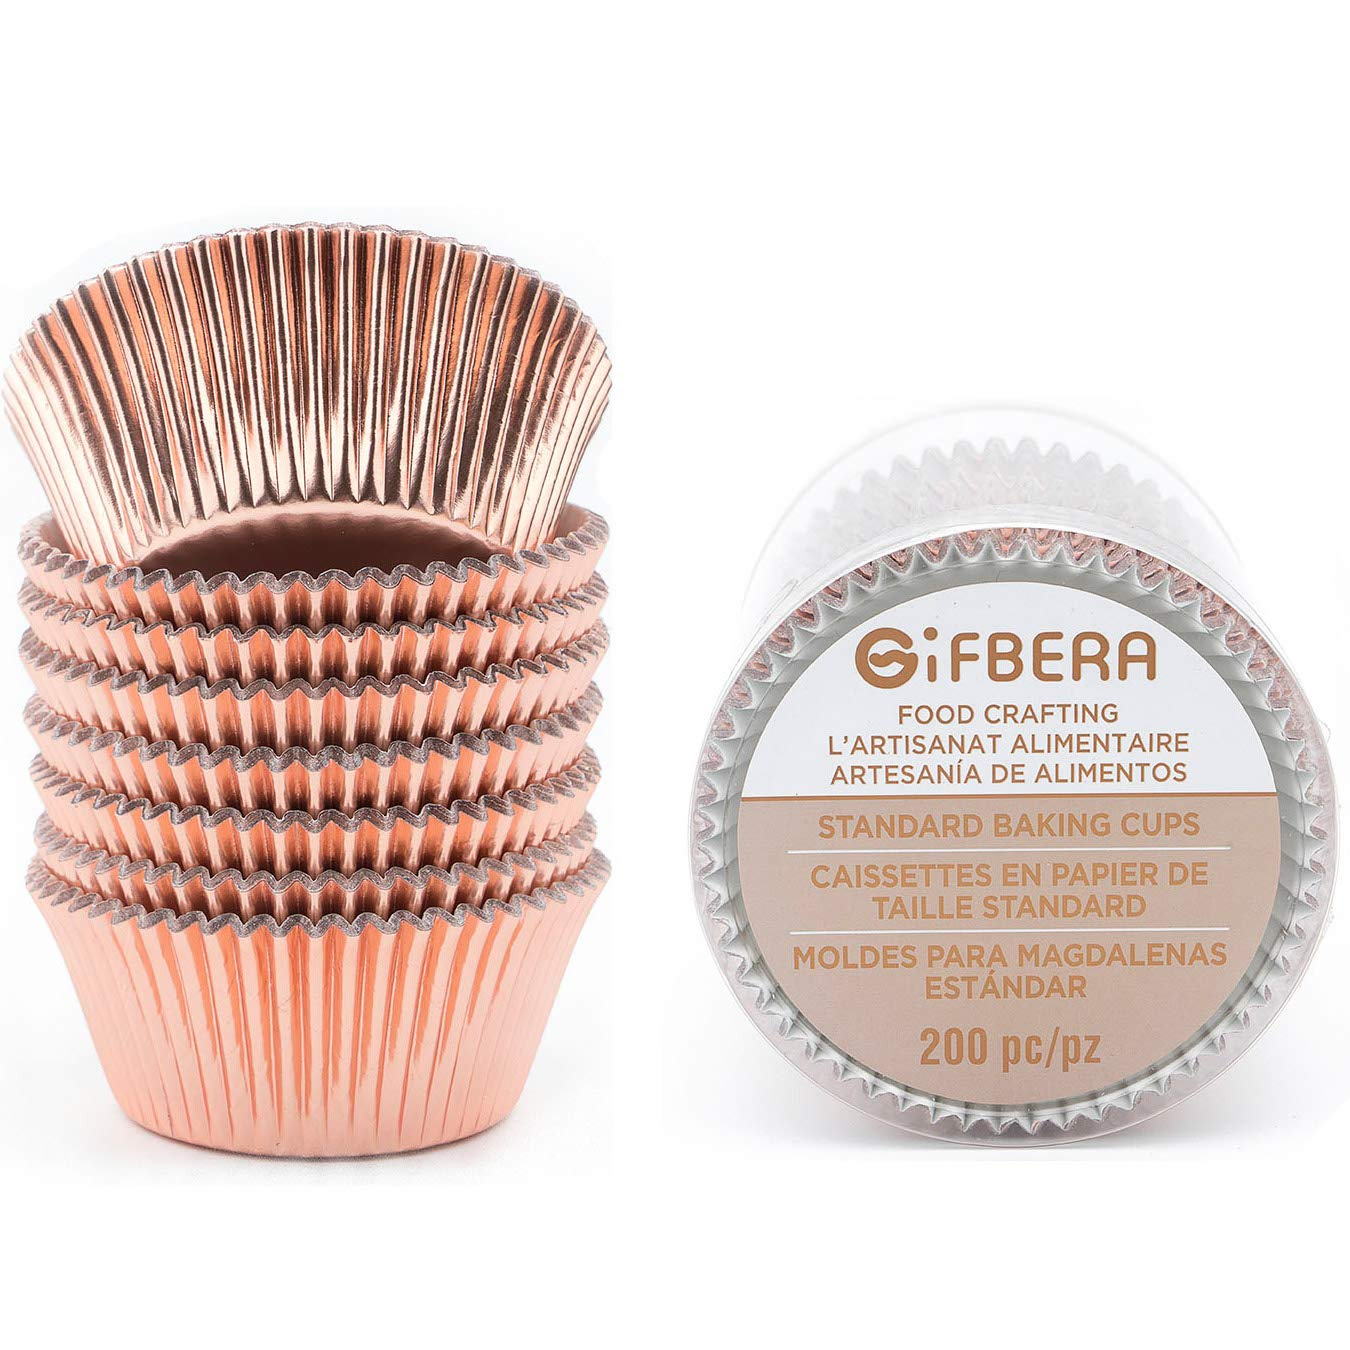 Gifbera Standard Rose Gold Foil Cupcake Liners/Baking Cups 200-Count